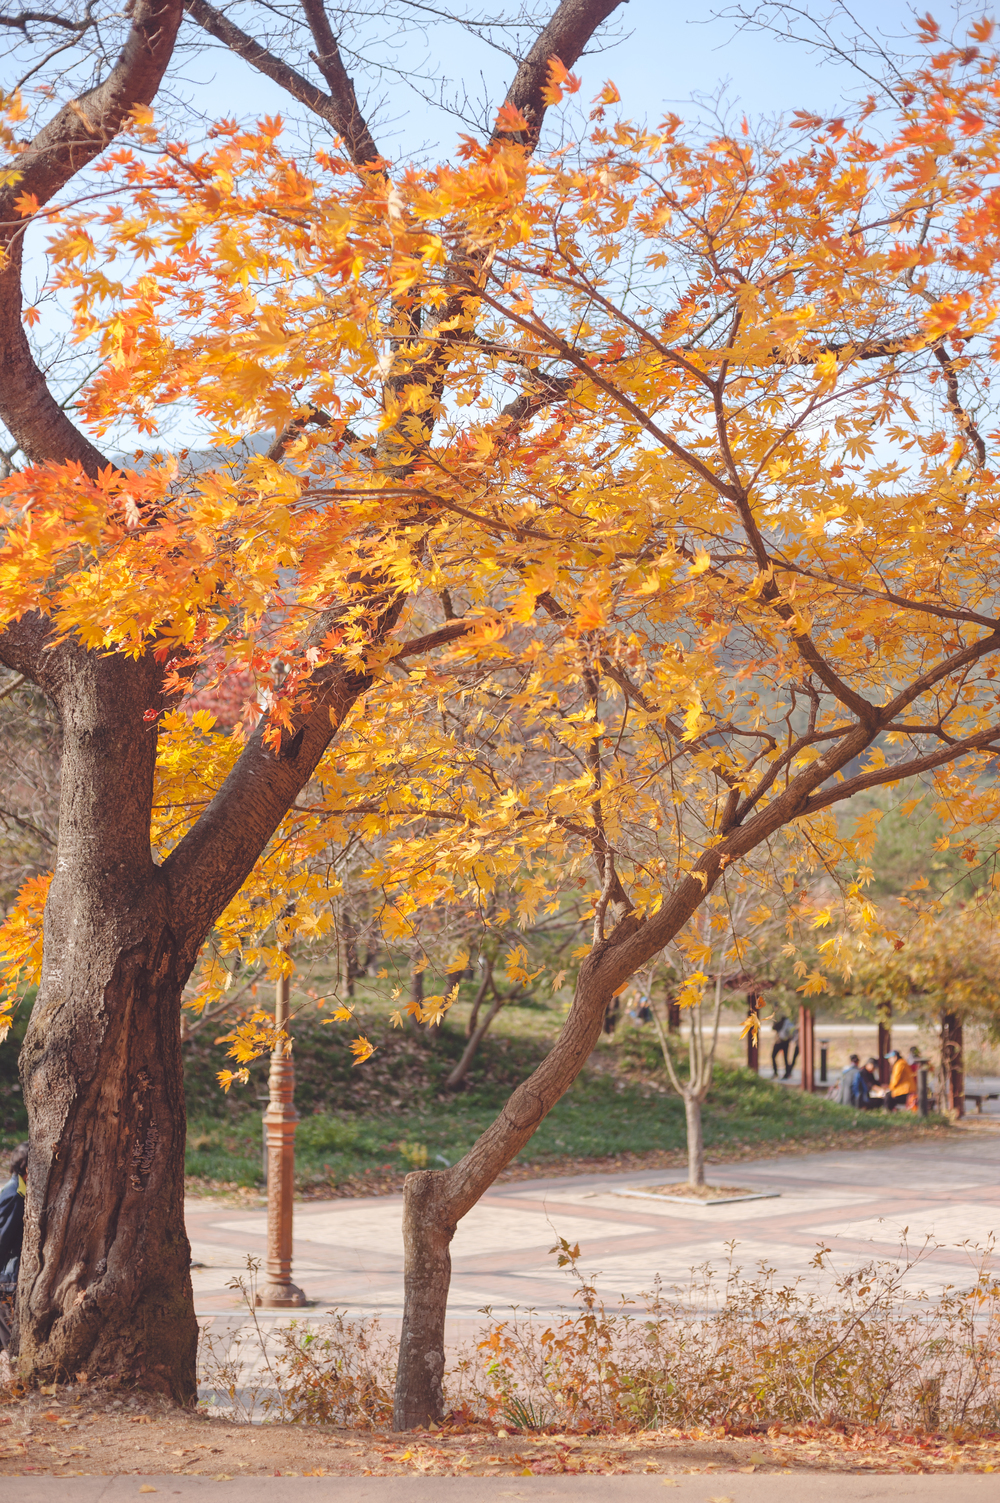 AutumnInKoreaSoenunsaParkFallLeaves (13 of 37).jpg